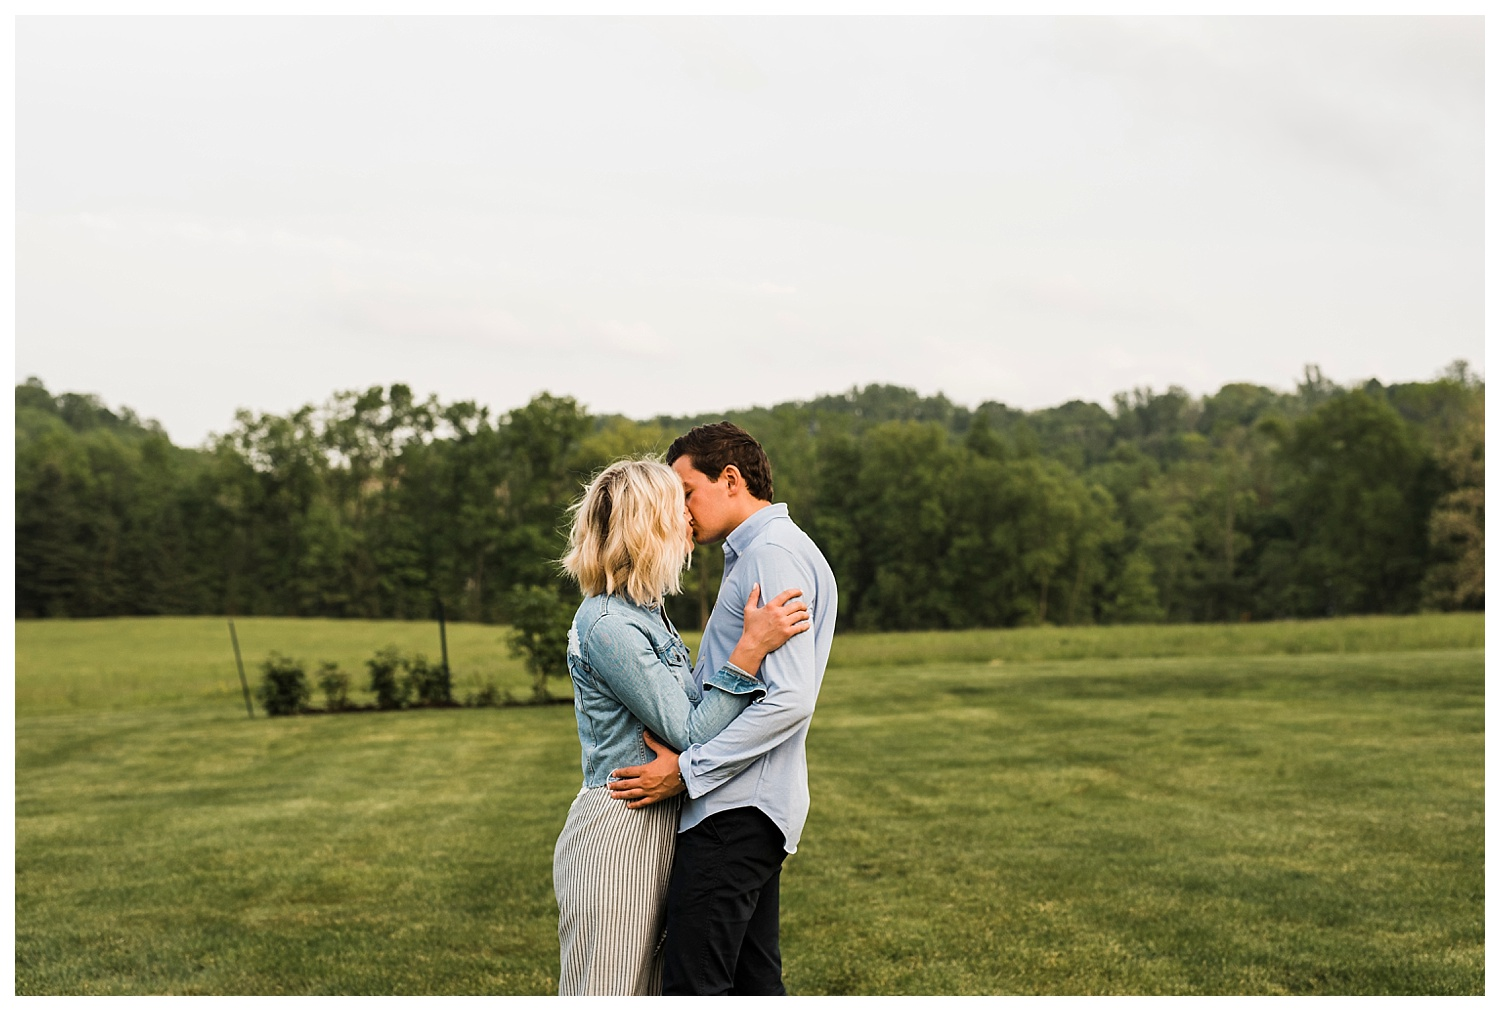 Hunterdon_County_Engagement_Session_Apollo_Fields11.jpg